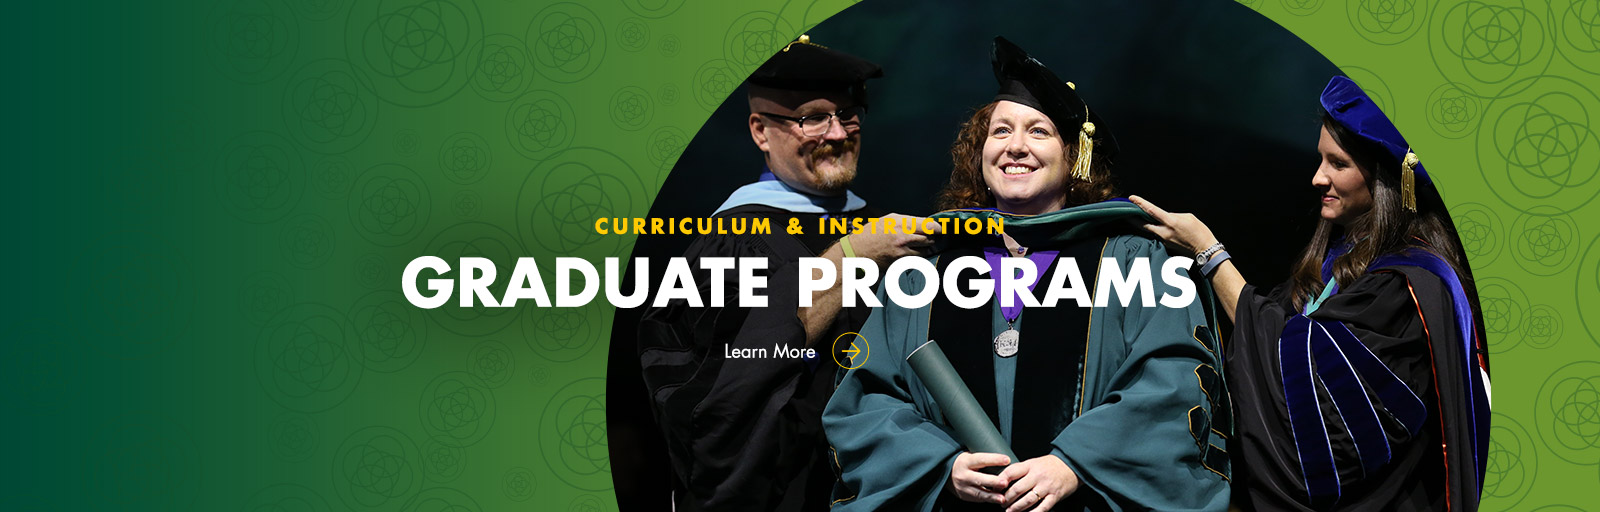 soe-mc_ci-GraduatePrograms